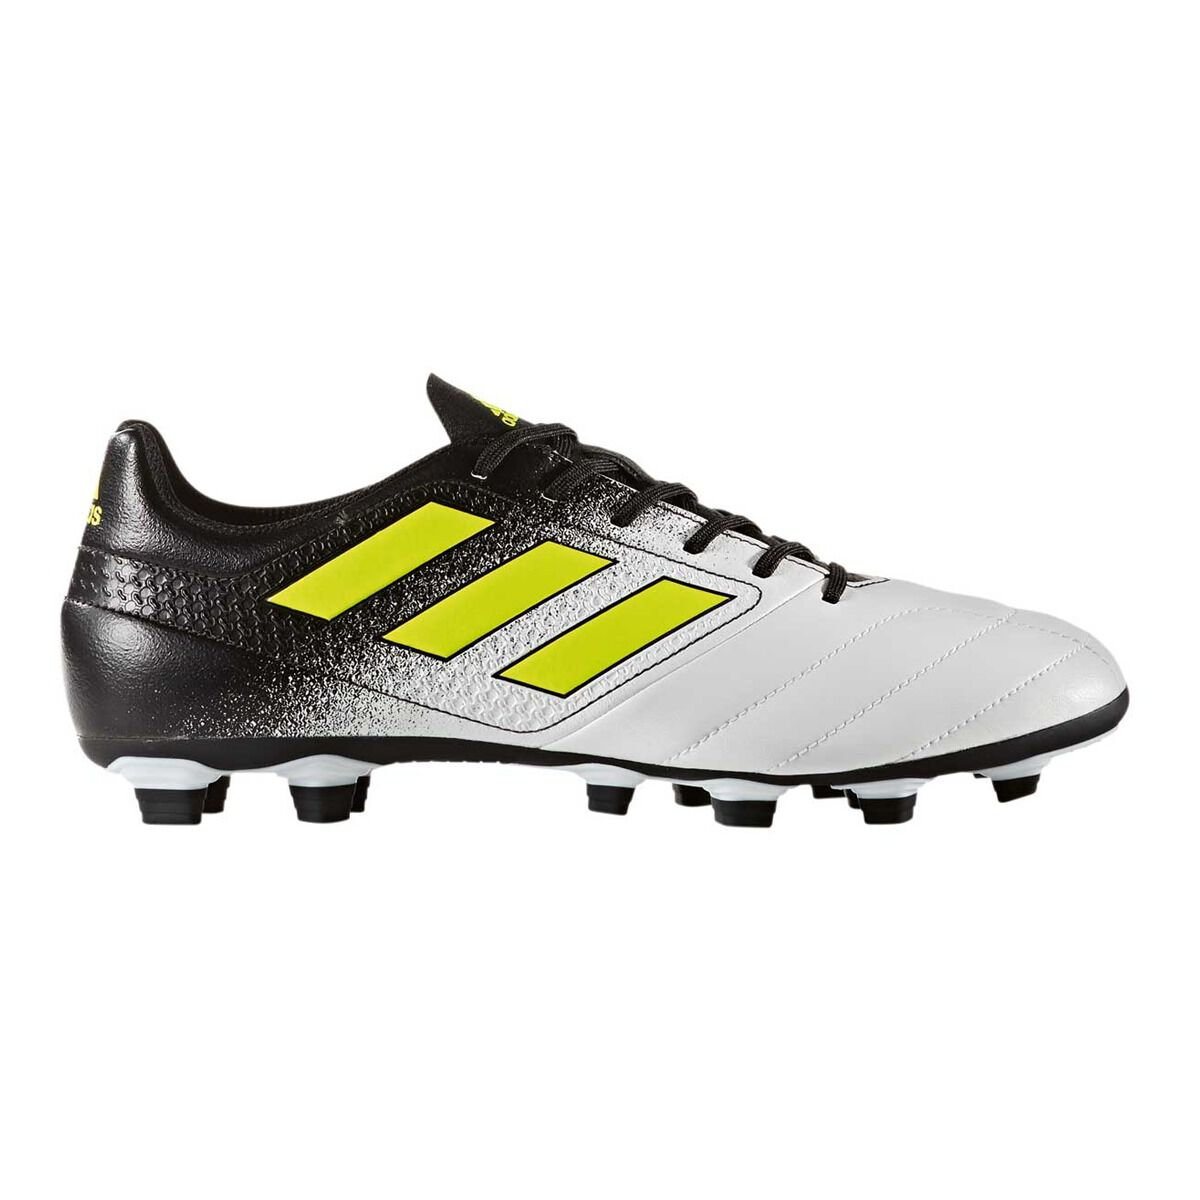 c73d3fbc3cce discount code for adidas ace 17.4 mens football boots white black us 9.5  adult white black